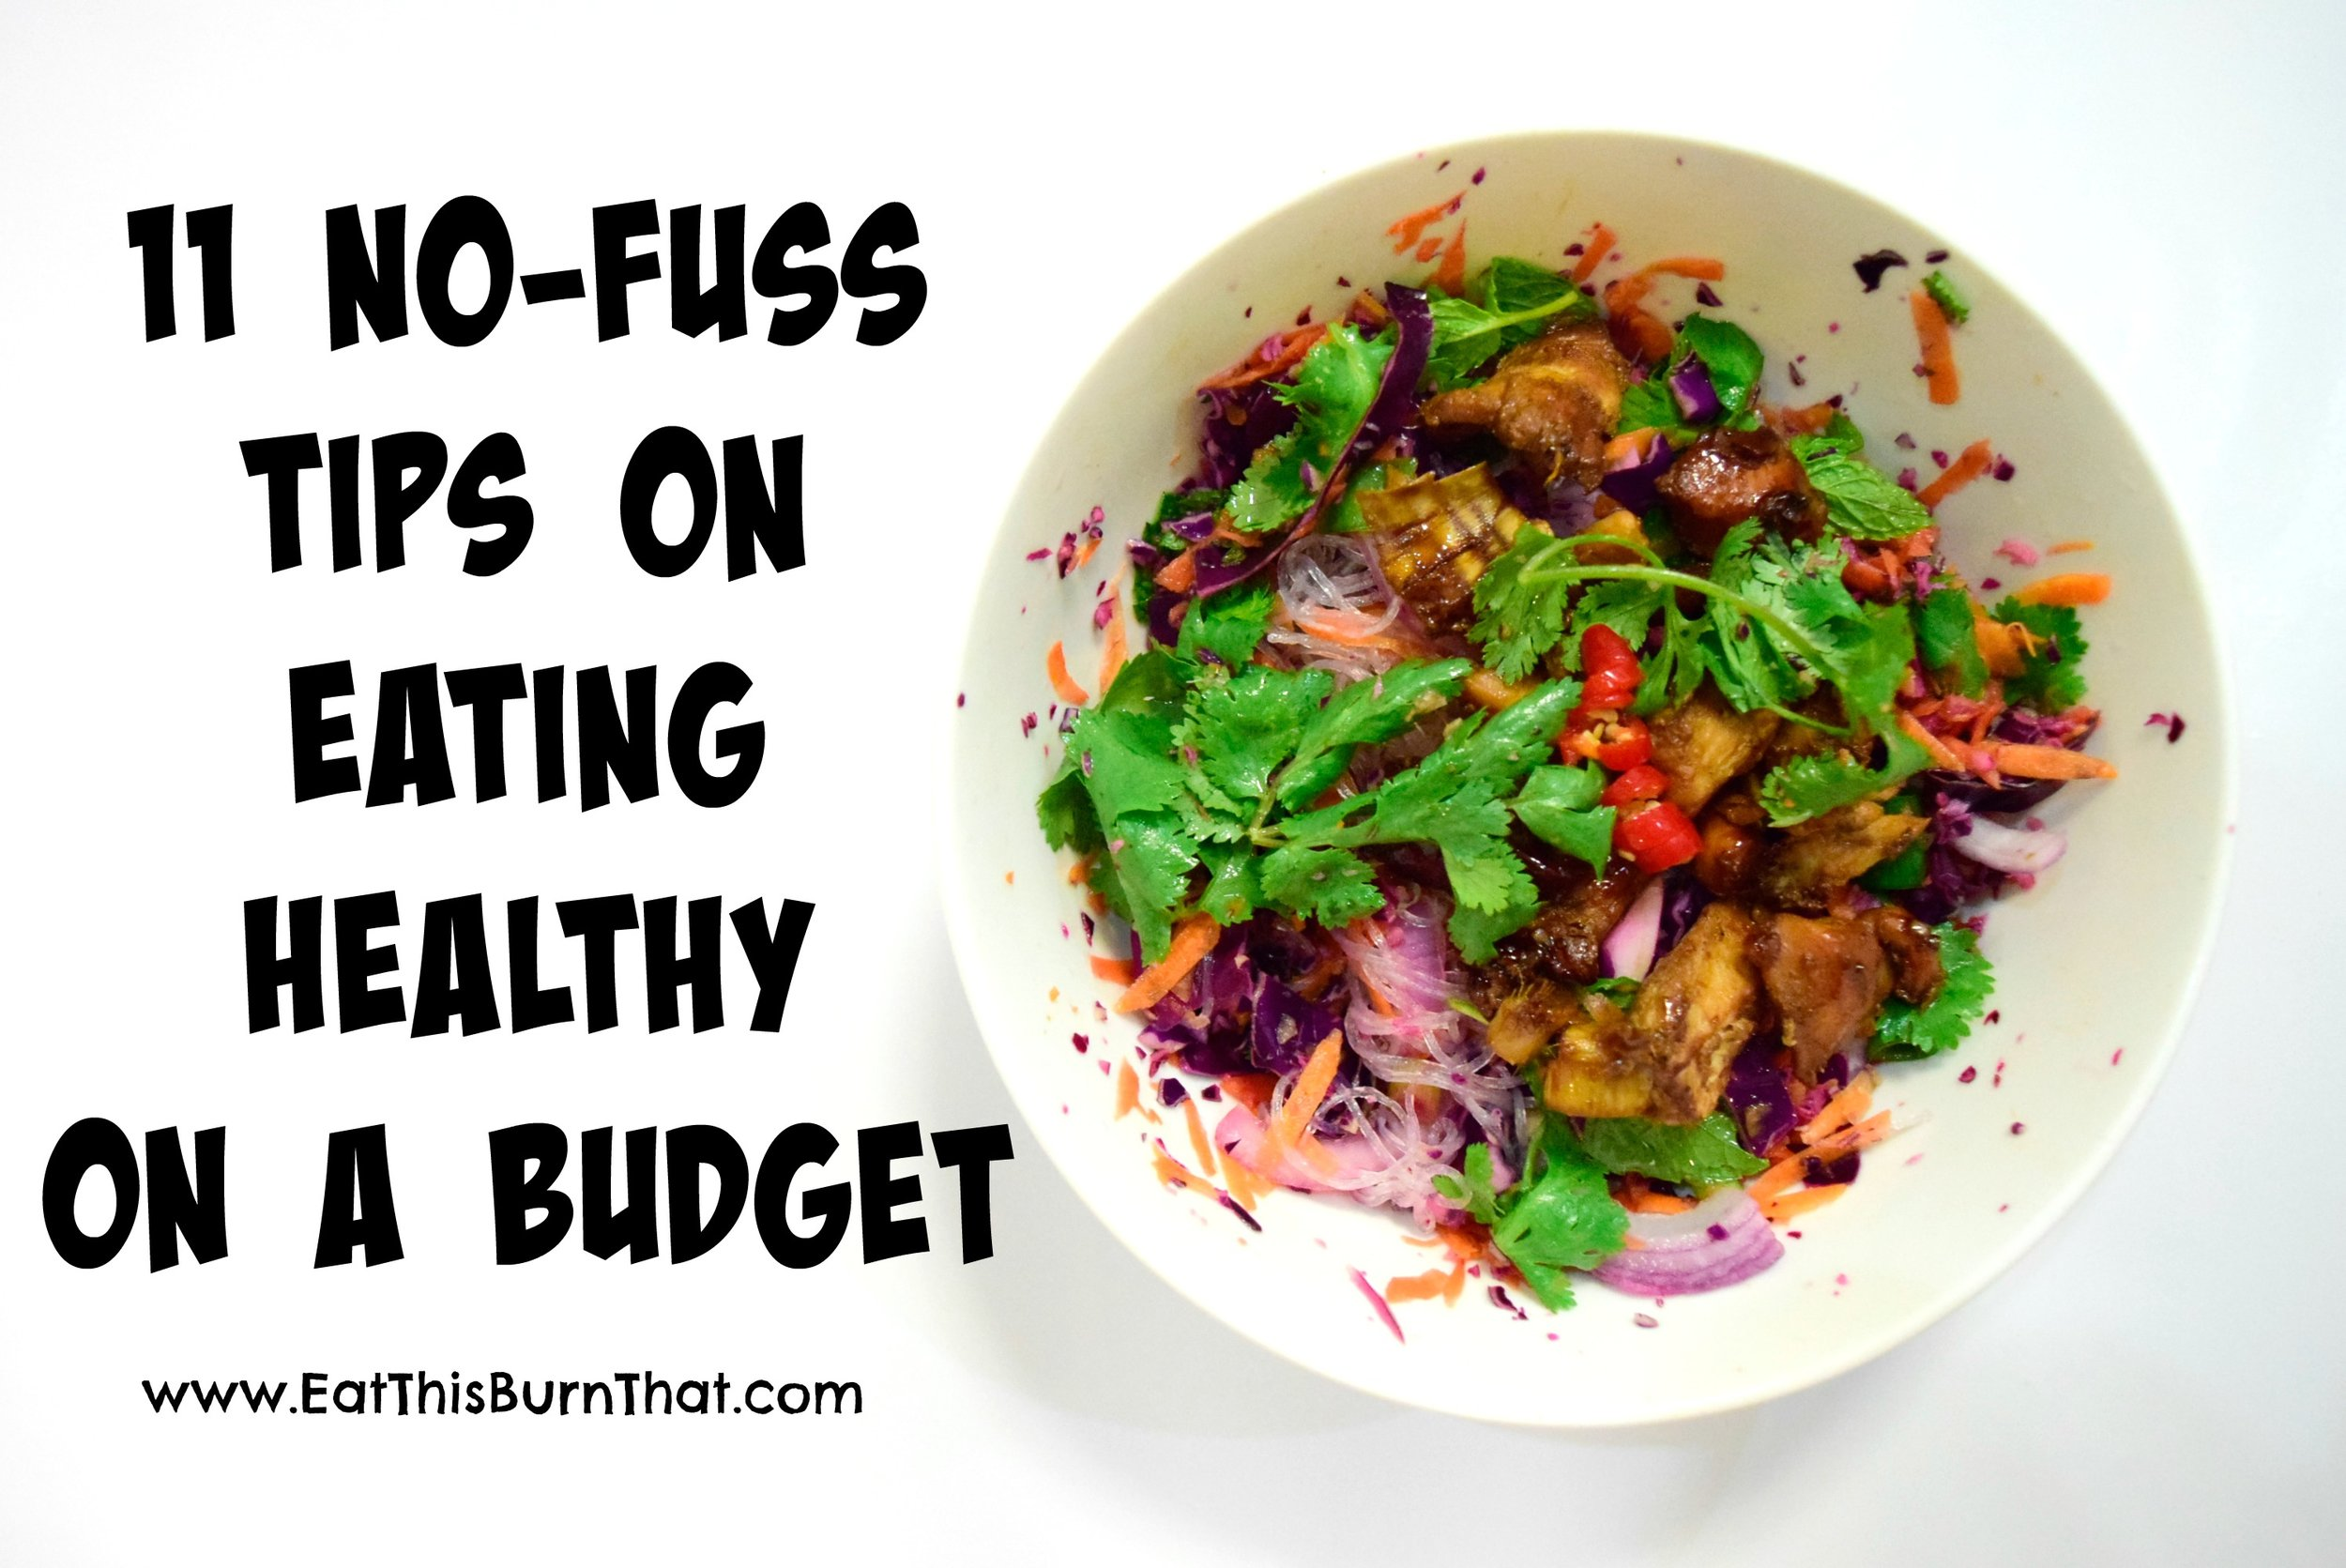 Eating-Healthy-On-A-Budget.jpg